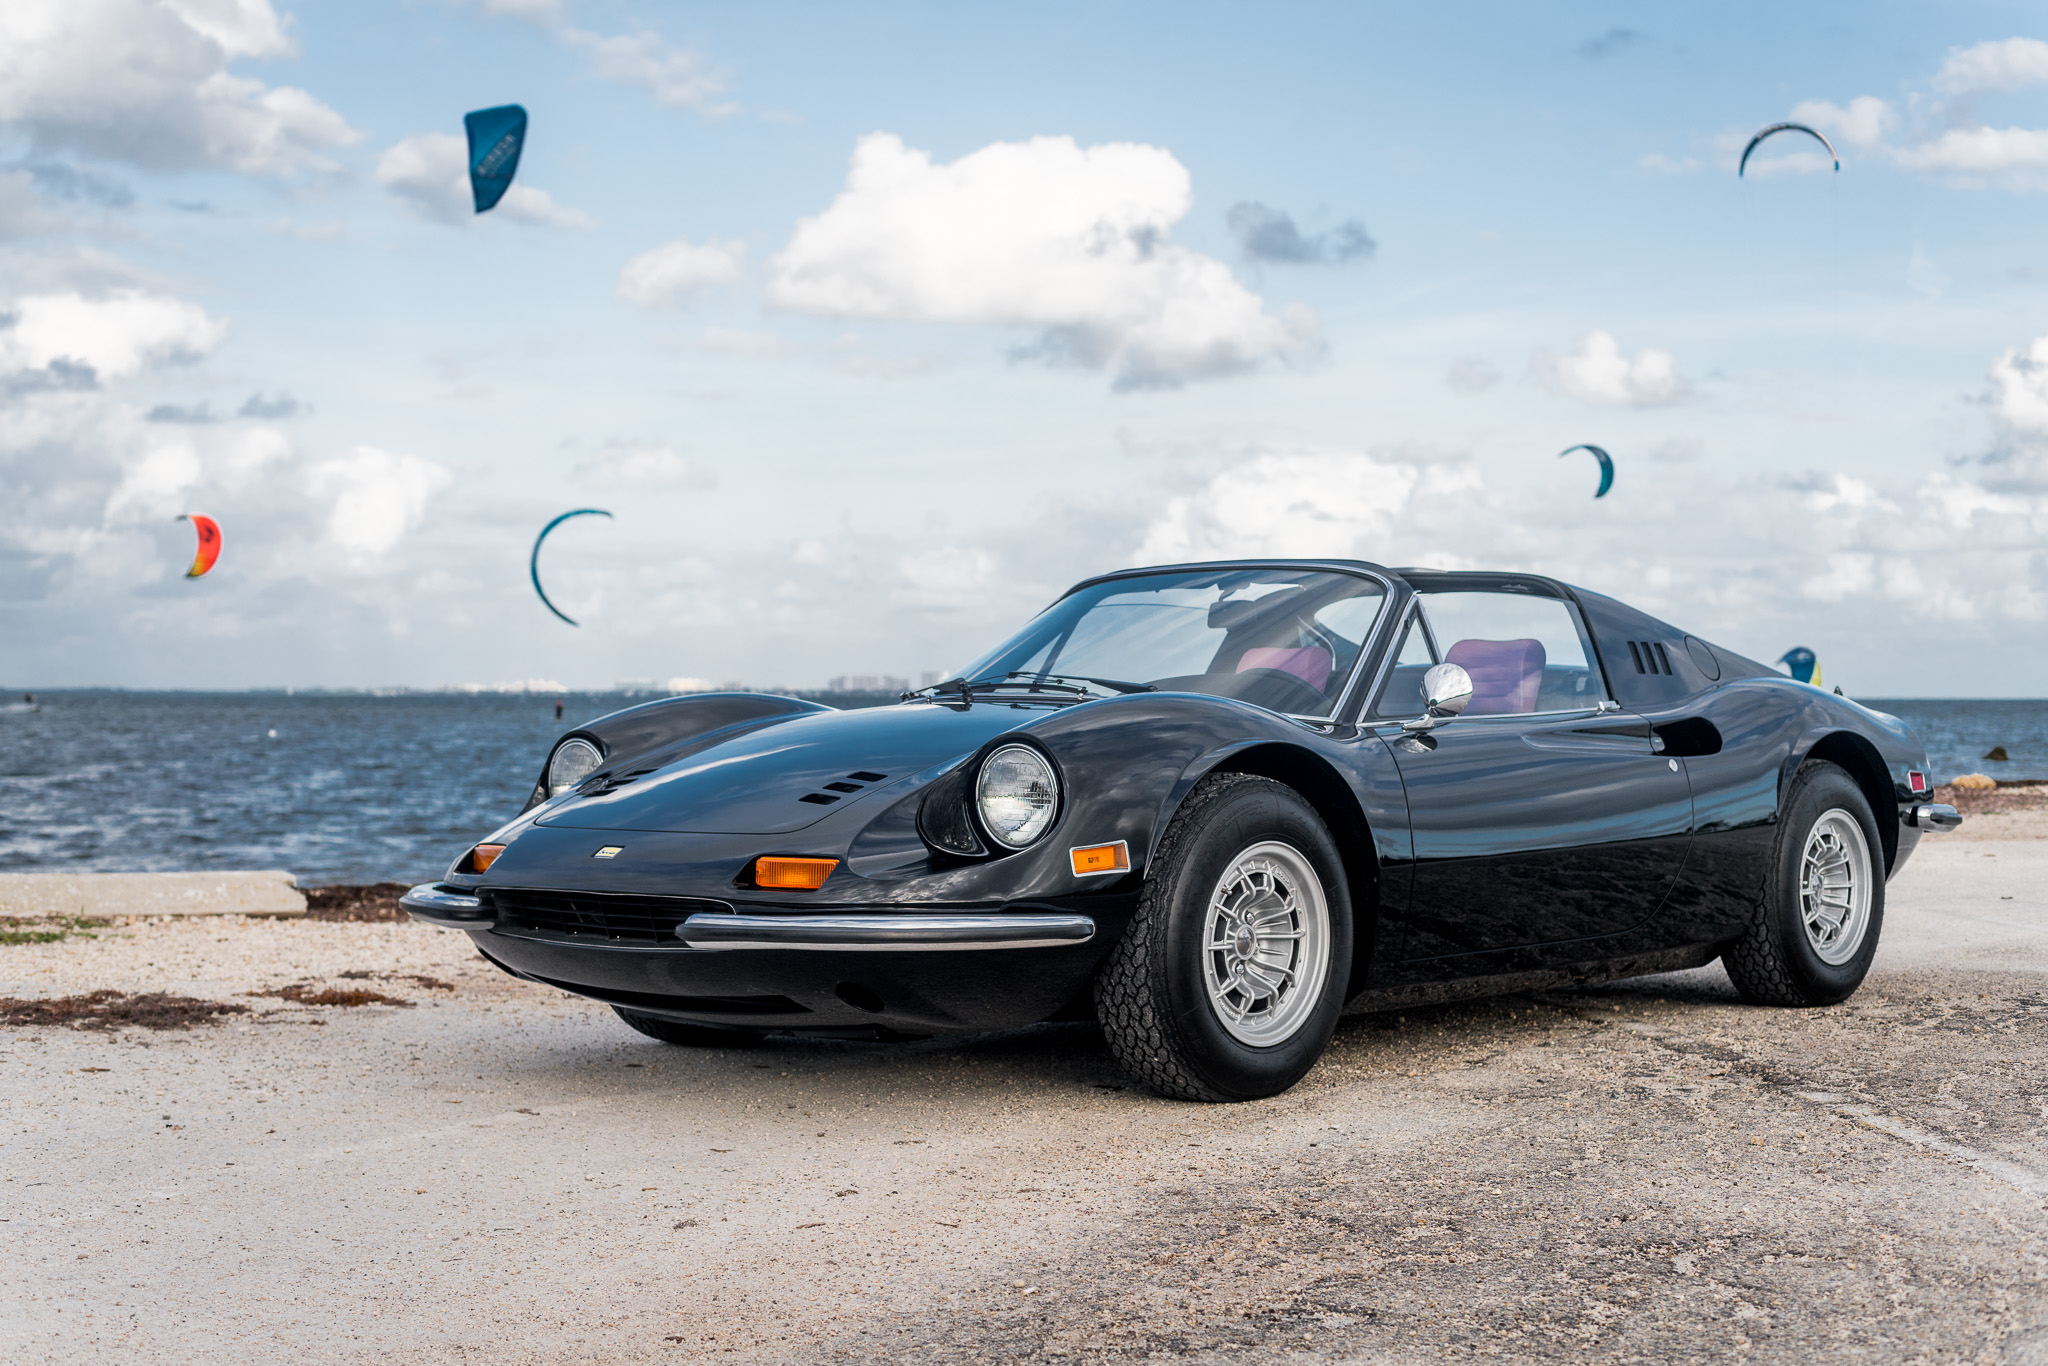 1972 Ferrari 246 Gts Dino For Sale Curated Vintage Classic Supercars